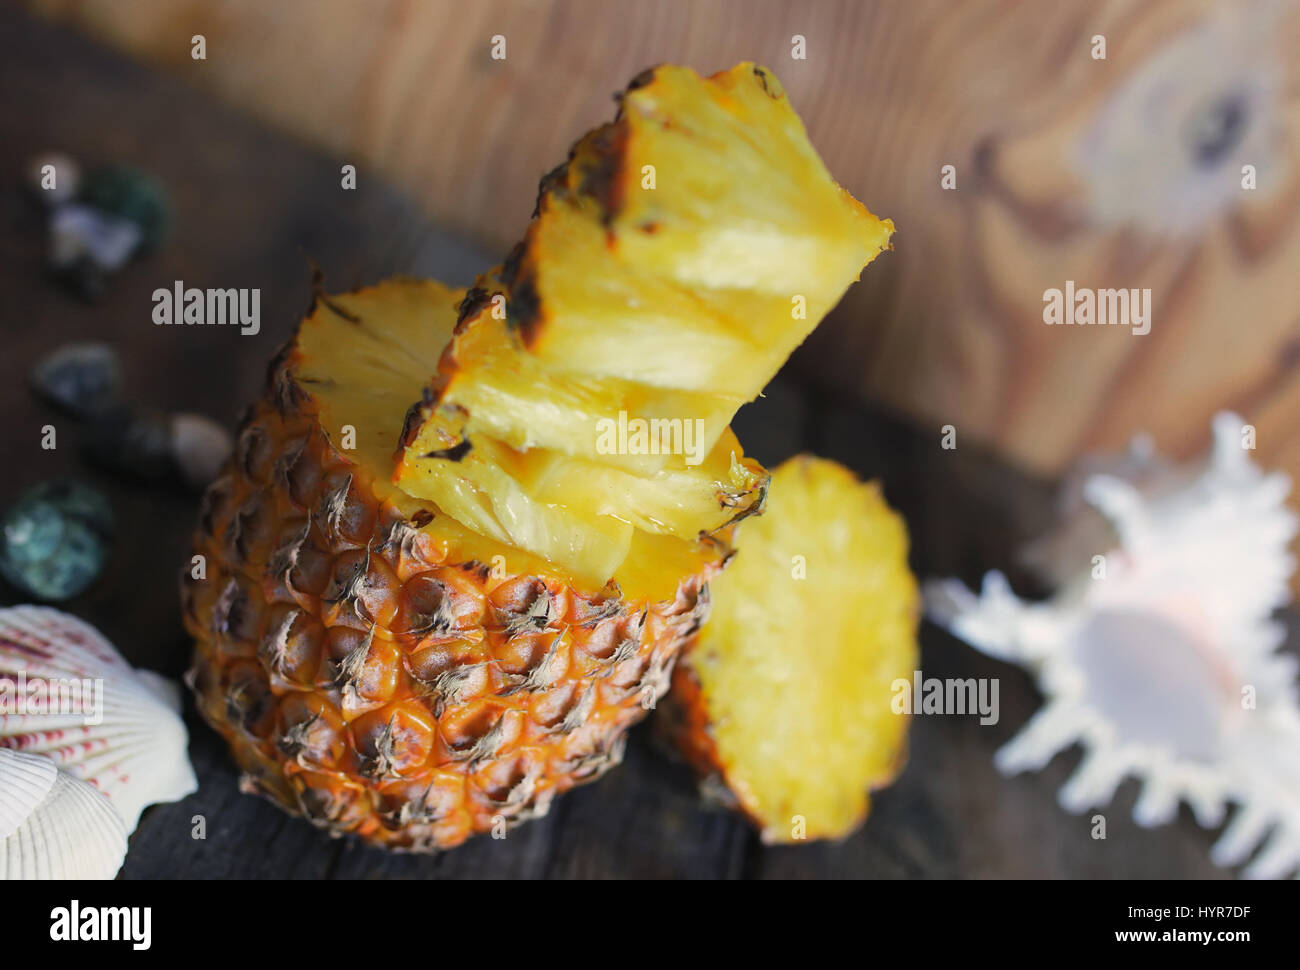 slices pineapple cut knife  - Stock Image